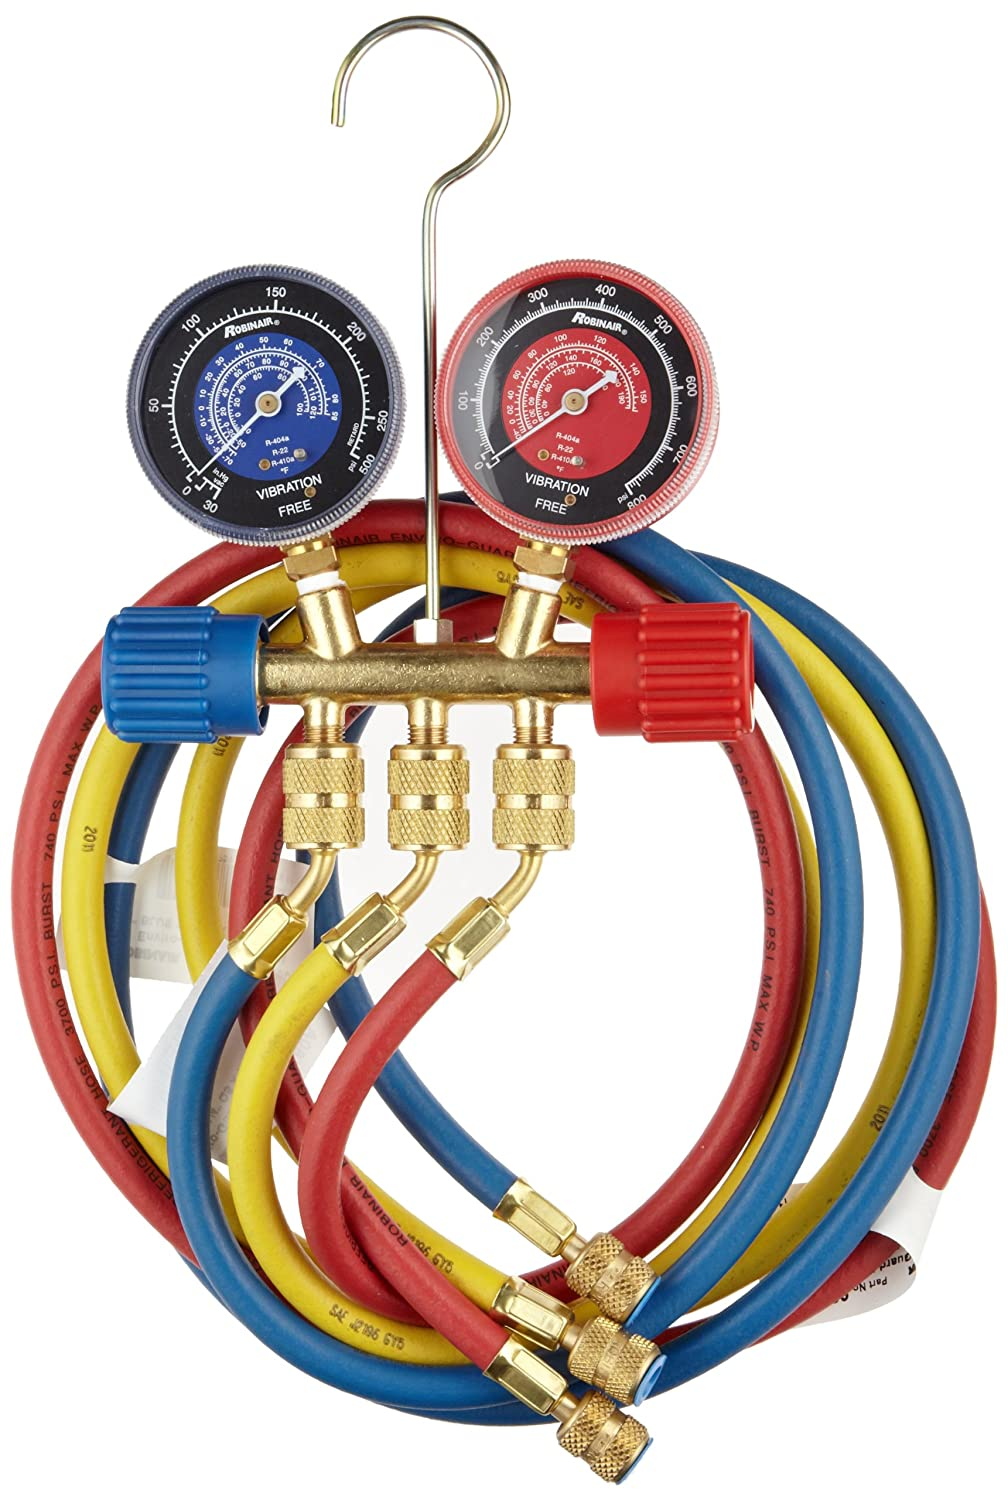 Robinair 40174 Two Way Brass Manifold with 60' RYB Hoses, For R22/404A/410A Refrigerant SPX Industrial